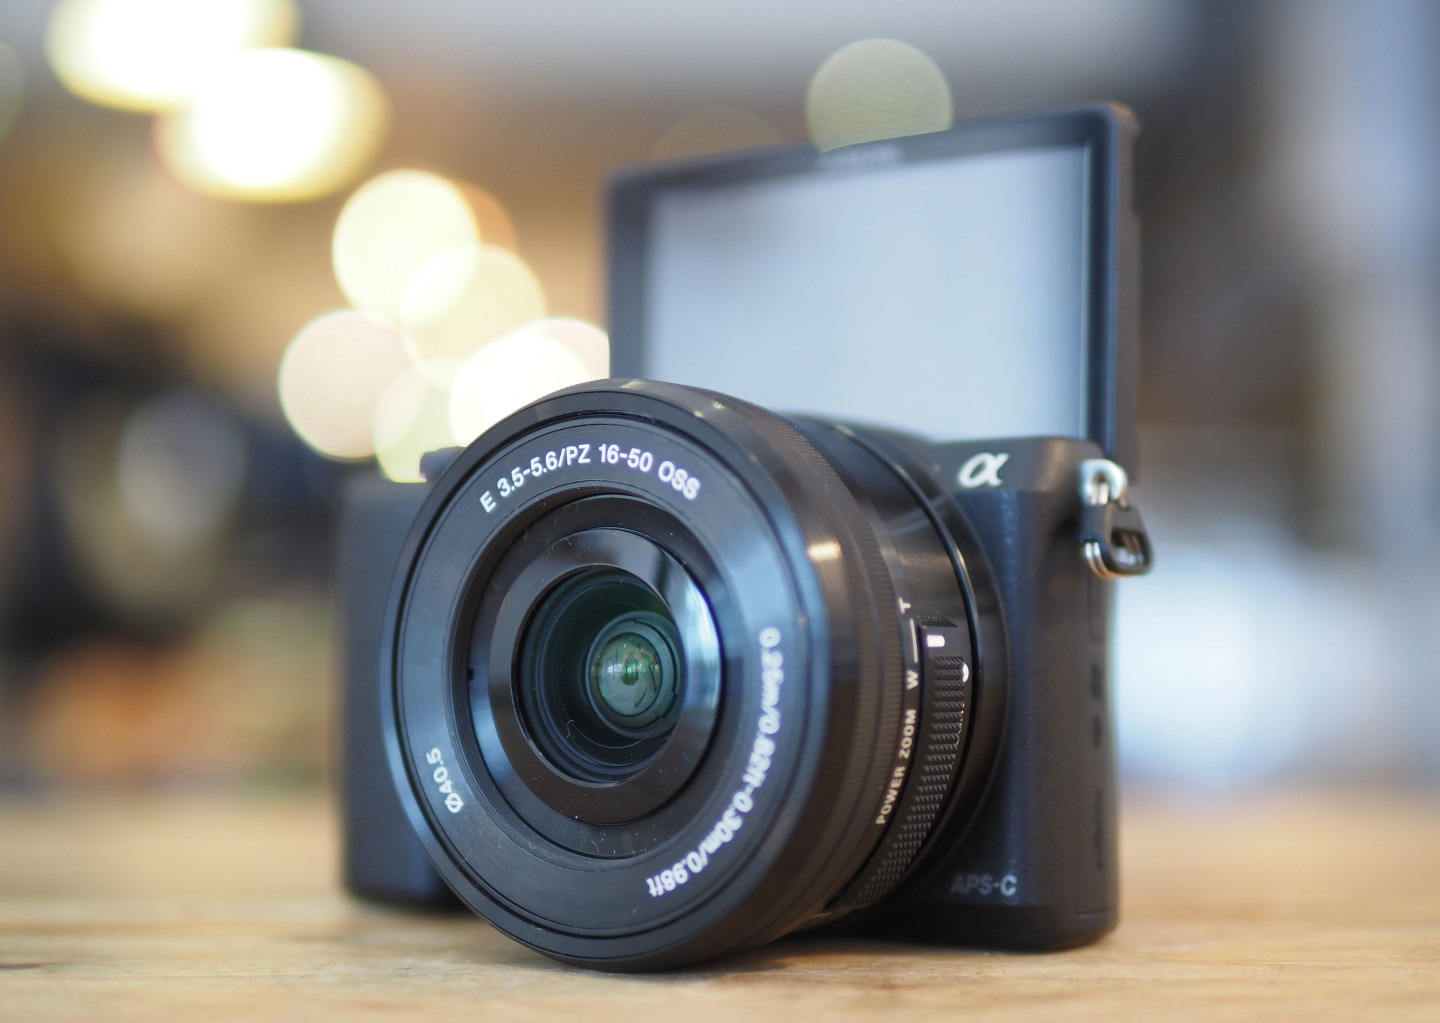 Sony A5100 featured